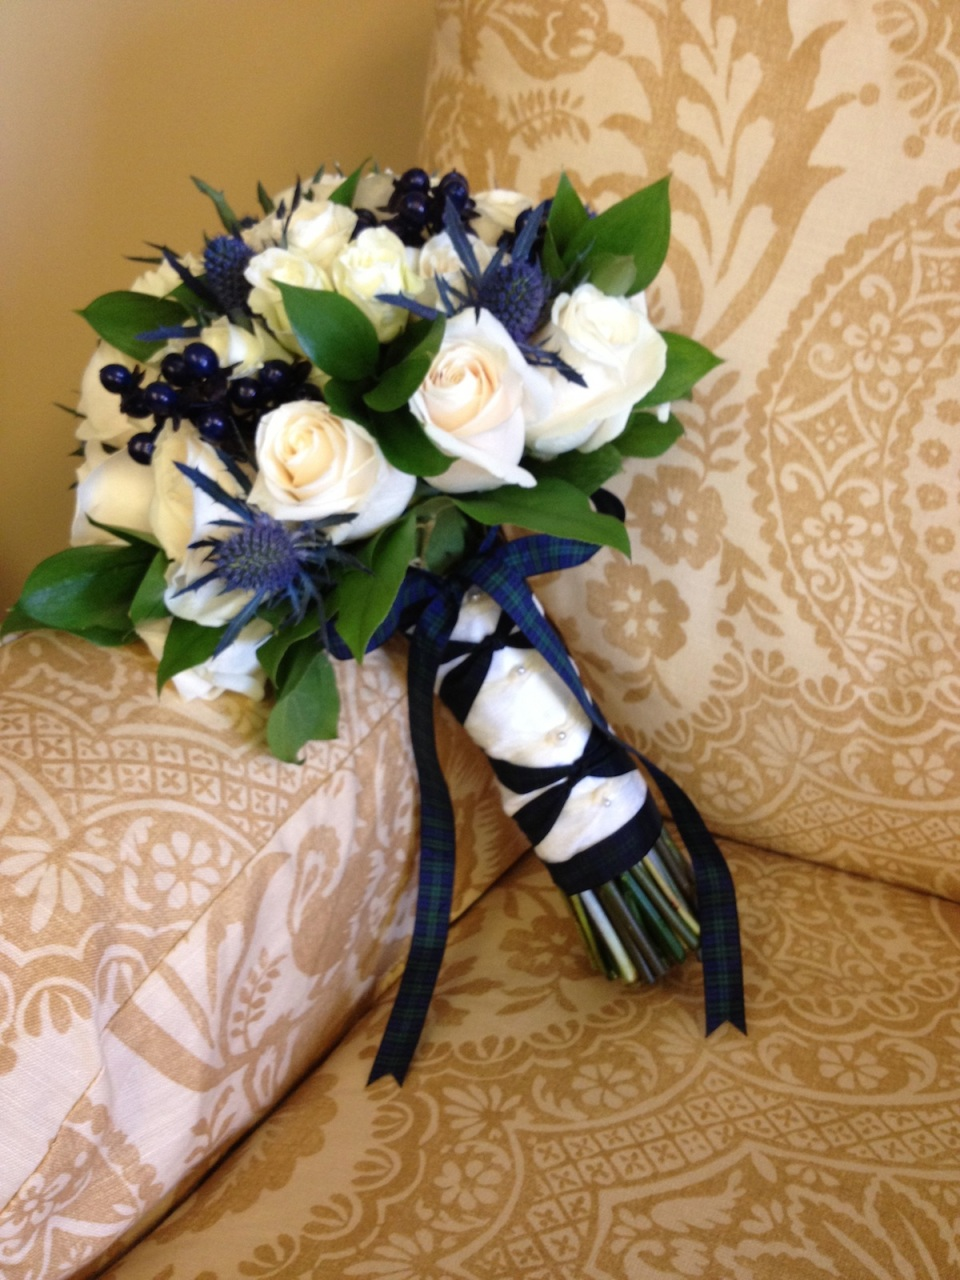 The Scottish Thistle in this bouquet and matching tartan ribbon were a tribute to the groom's Scottish heritage.